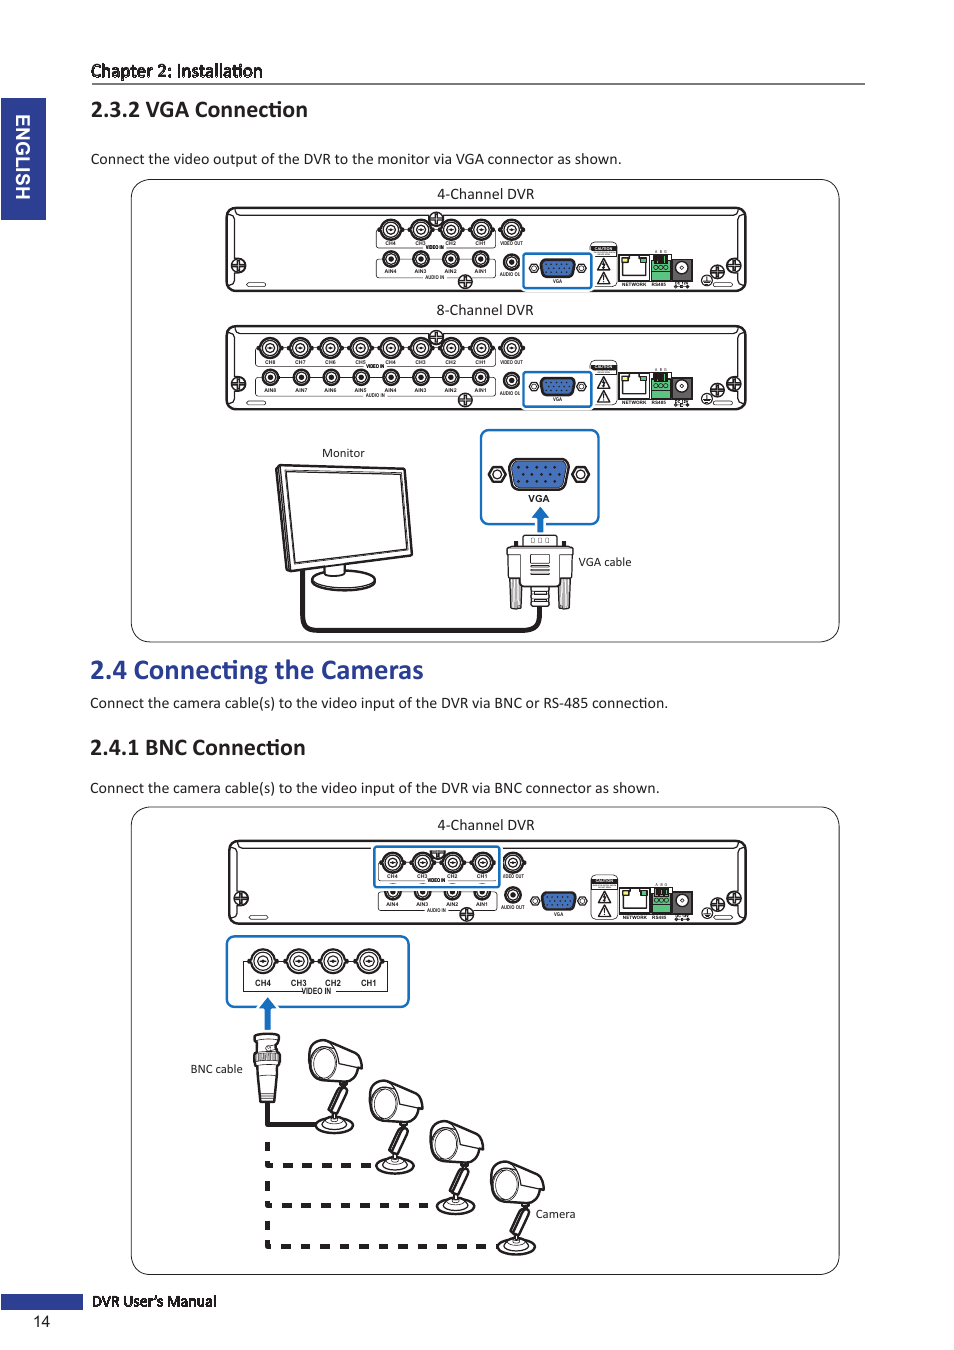 hight resolution of 2 vga connection 4 connecting the cameras 1 bnc connection english chapter 2